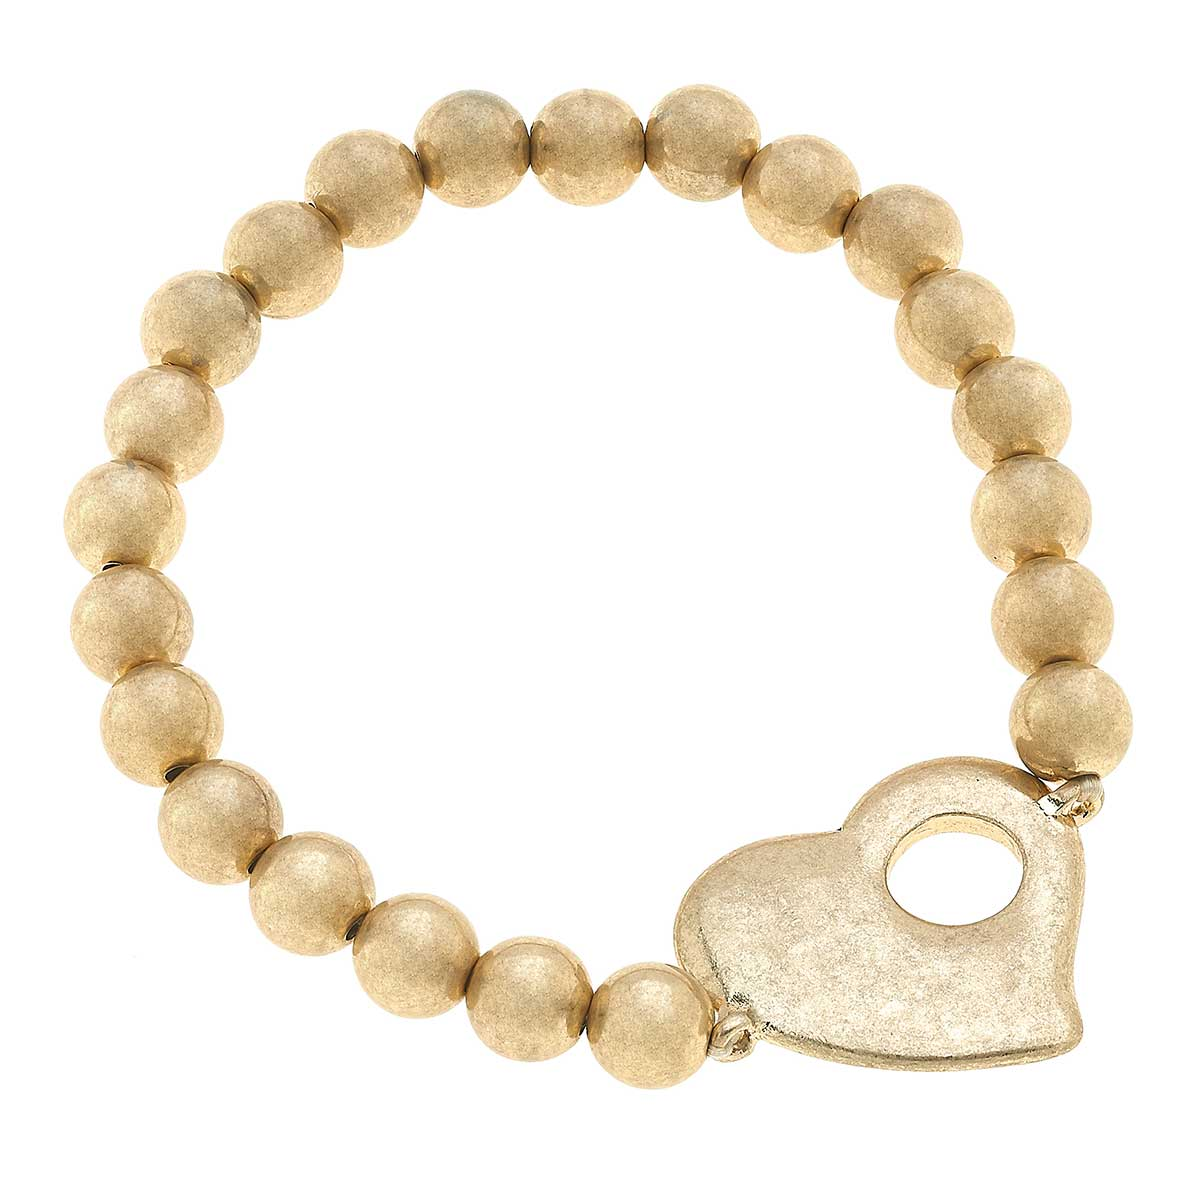 Avalyn Heart Ball Bead Stretch Bracelet in Worn Gold